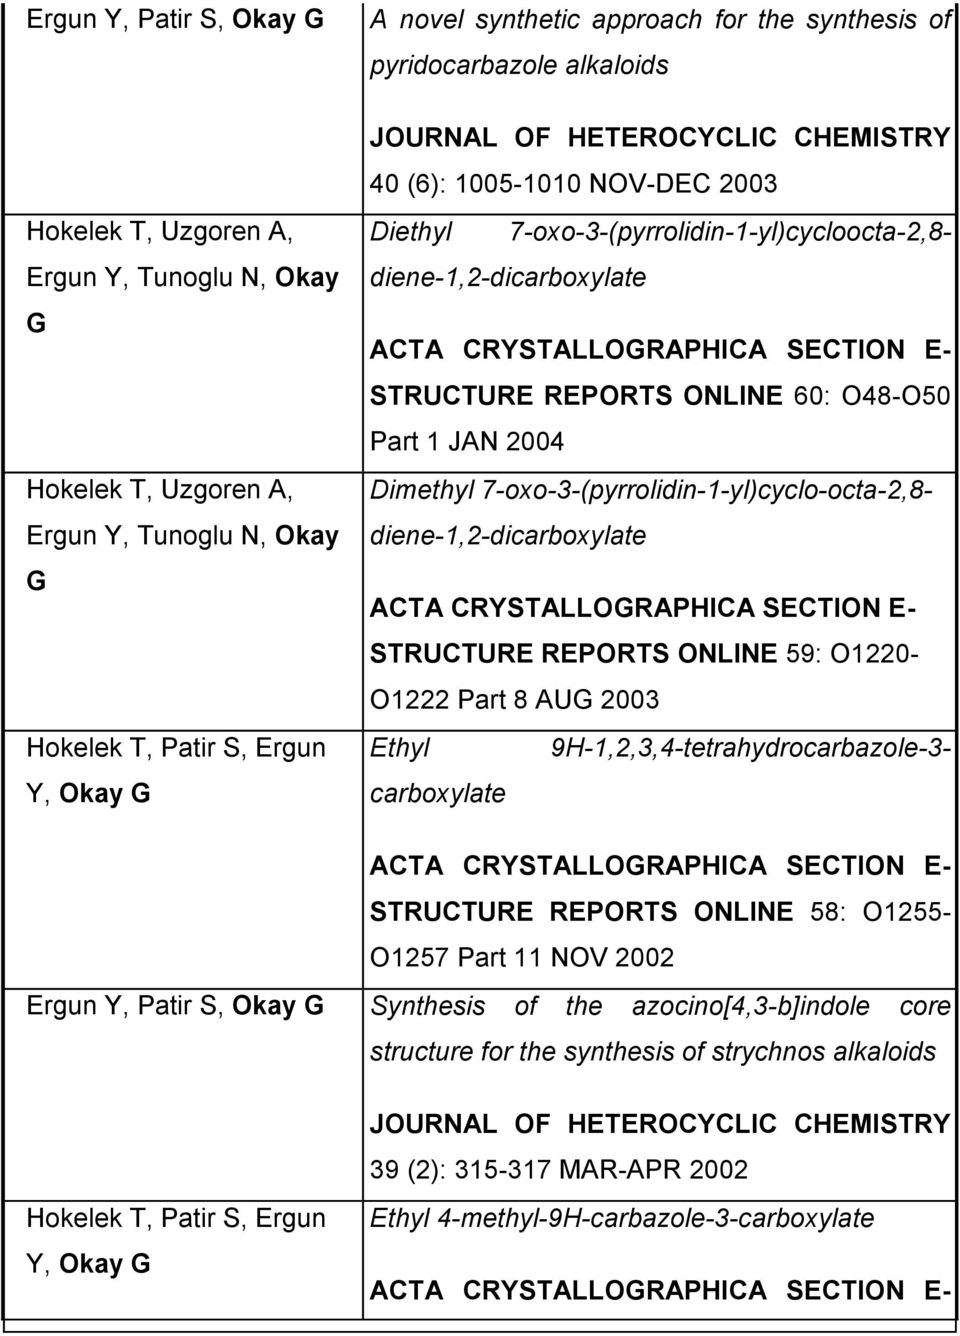 SECTION E- STRUCTURE REPORTS ONLINE 60: O48-O50 Part 1 JAN 2004 Dimethyl 7-oxo-3-(pyrrolidin-1-yl)cyclo-octa-2,8- diene-1,2-dicarboxylate ACTA CRYSTALLOGRAPHICA SECTION E- STRUCTURE REPORTS ONLINE